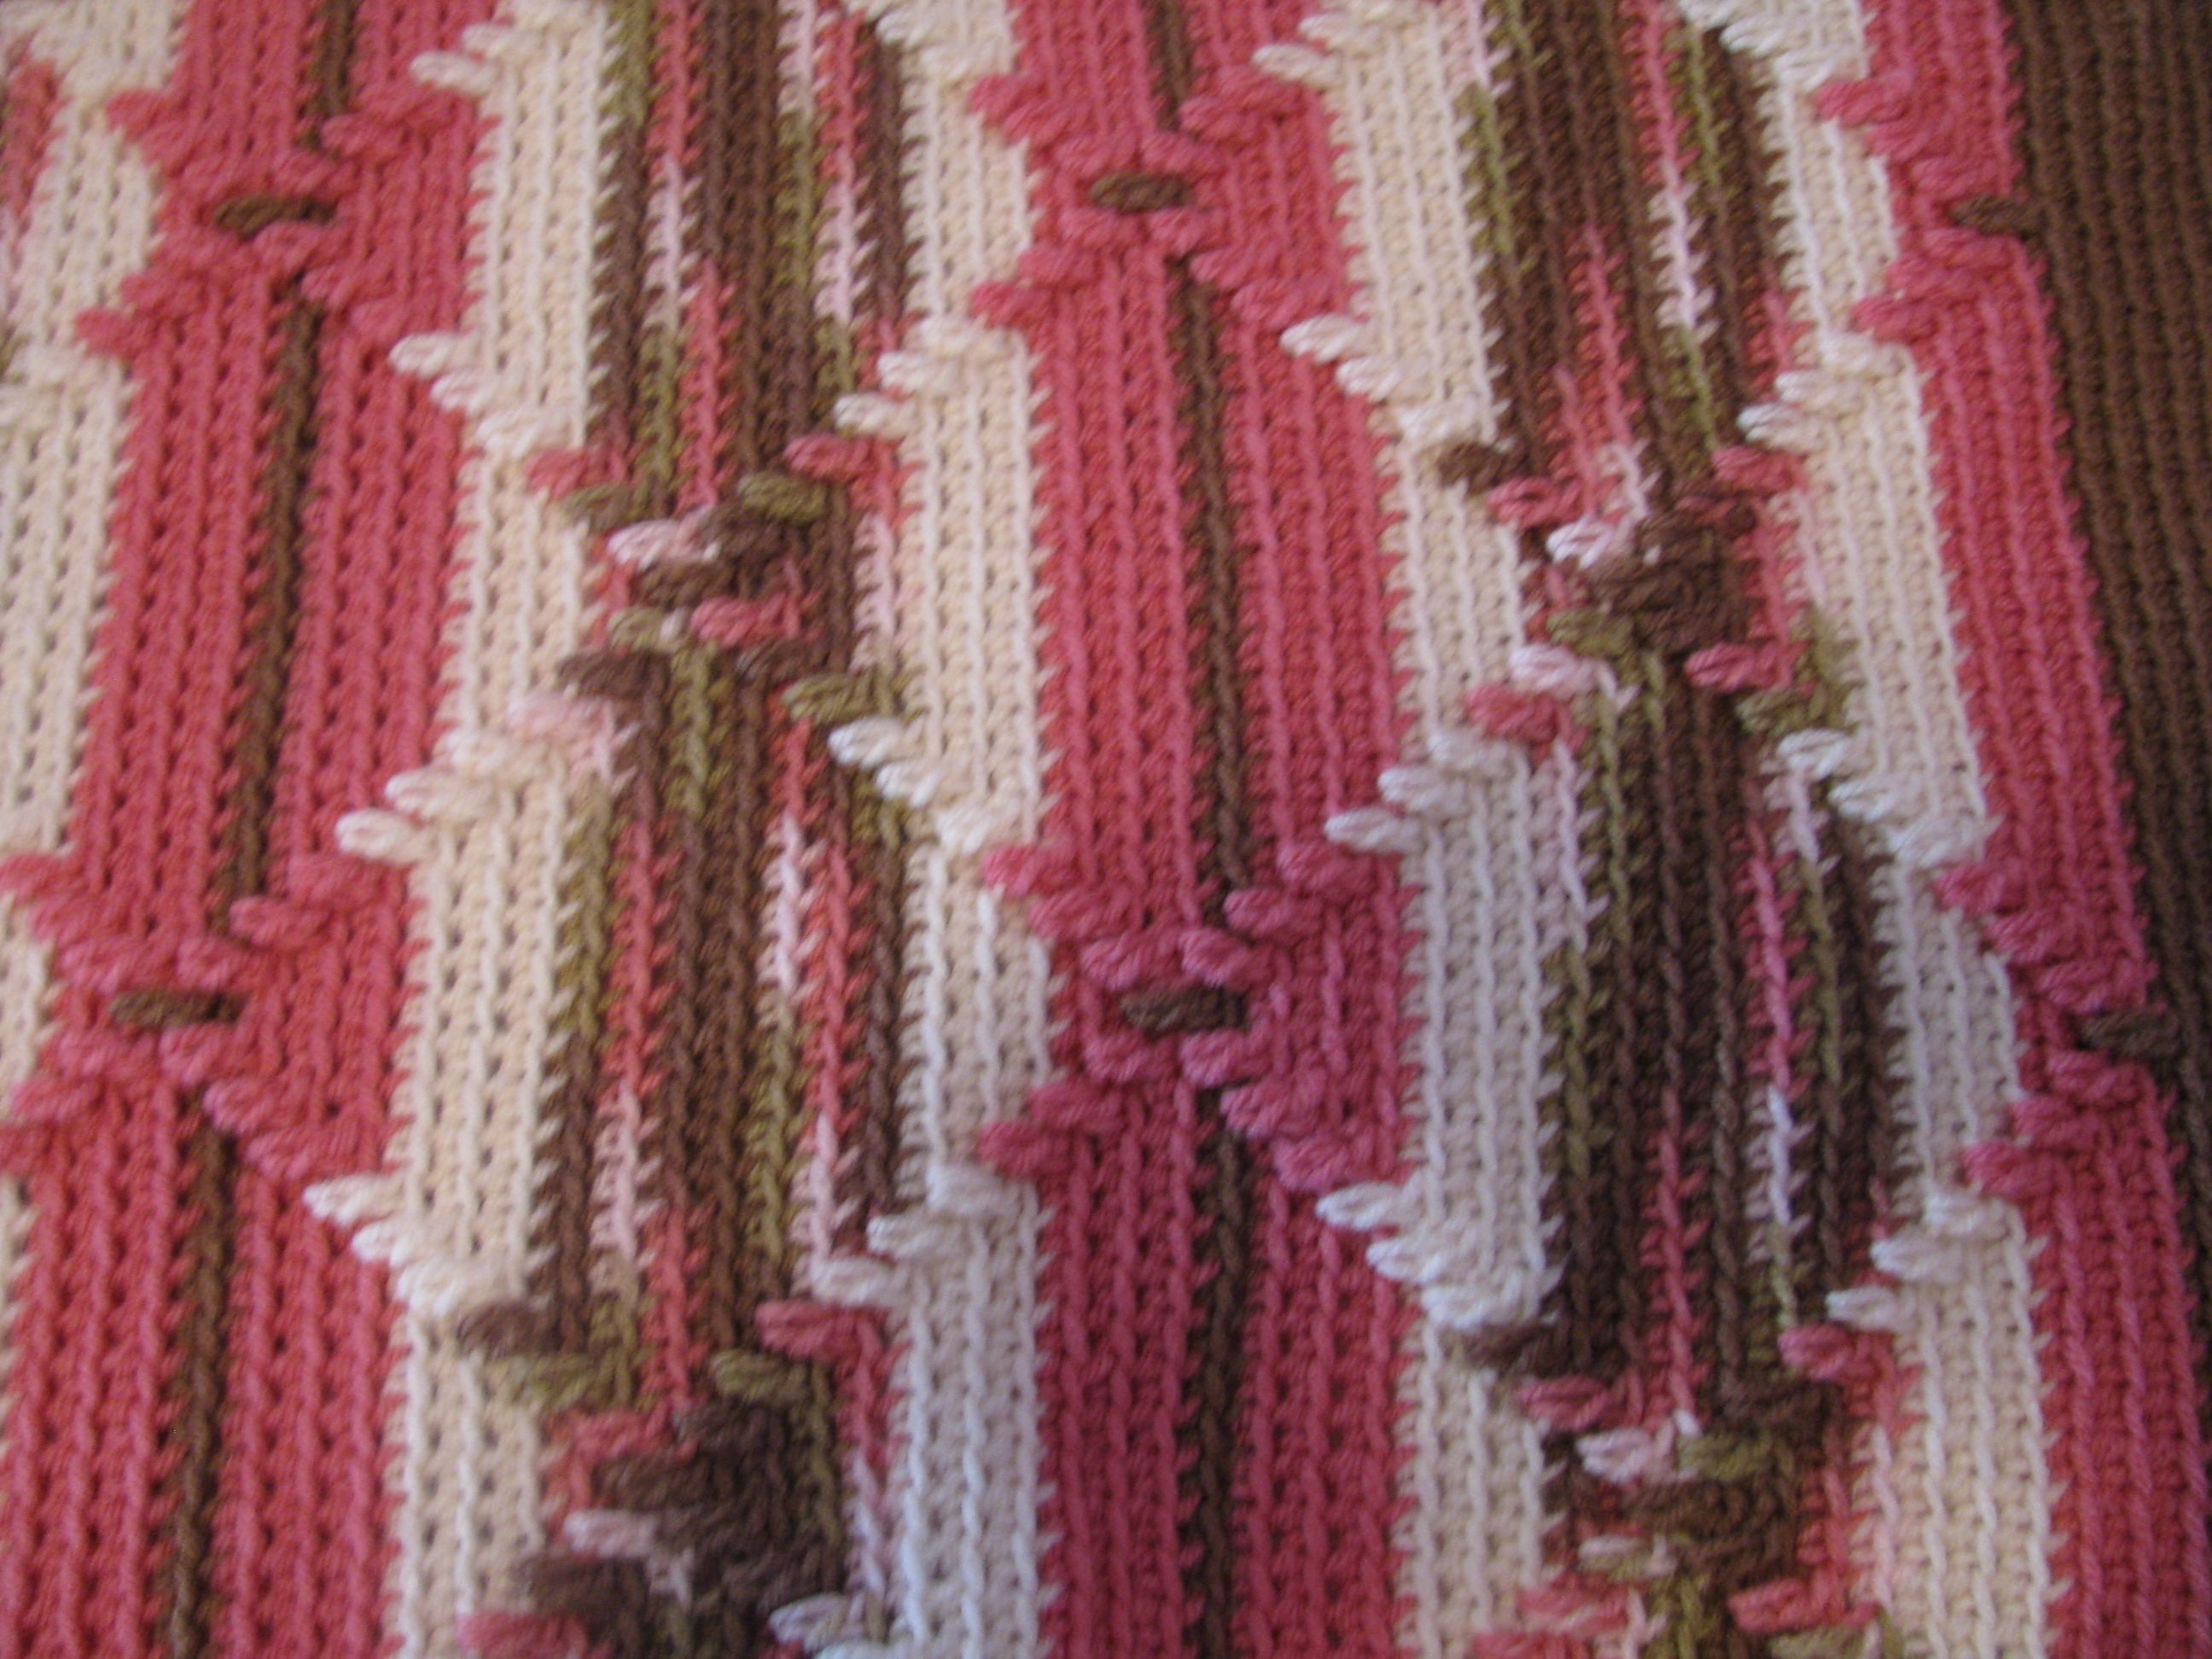 Crocheted afghan navajo pattern pink camouflage pink close up of navajo pattern handmade crocheted afghan in using pink camouflage variegated yarn from bankloansurffo Choice Image